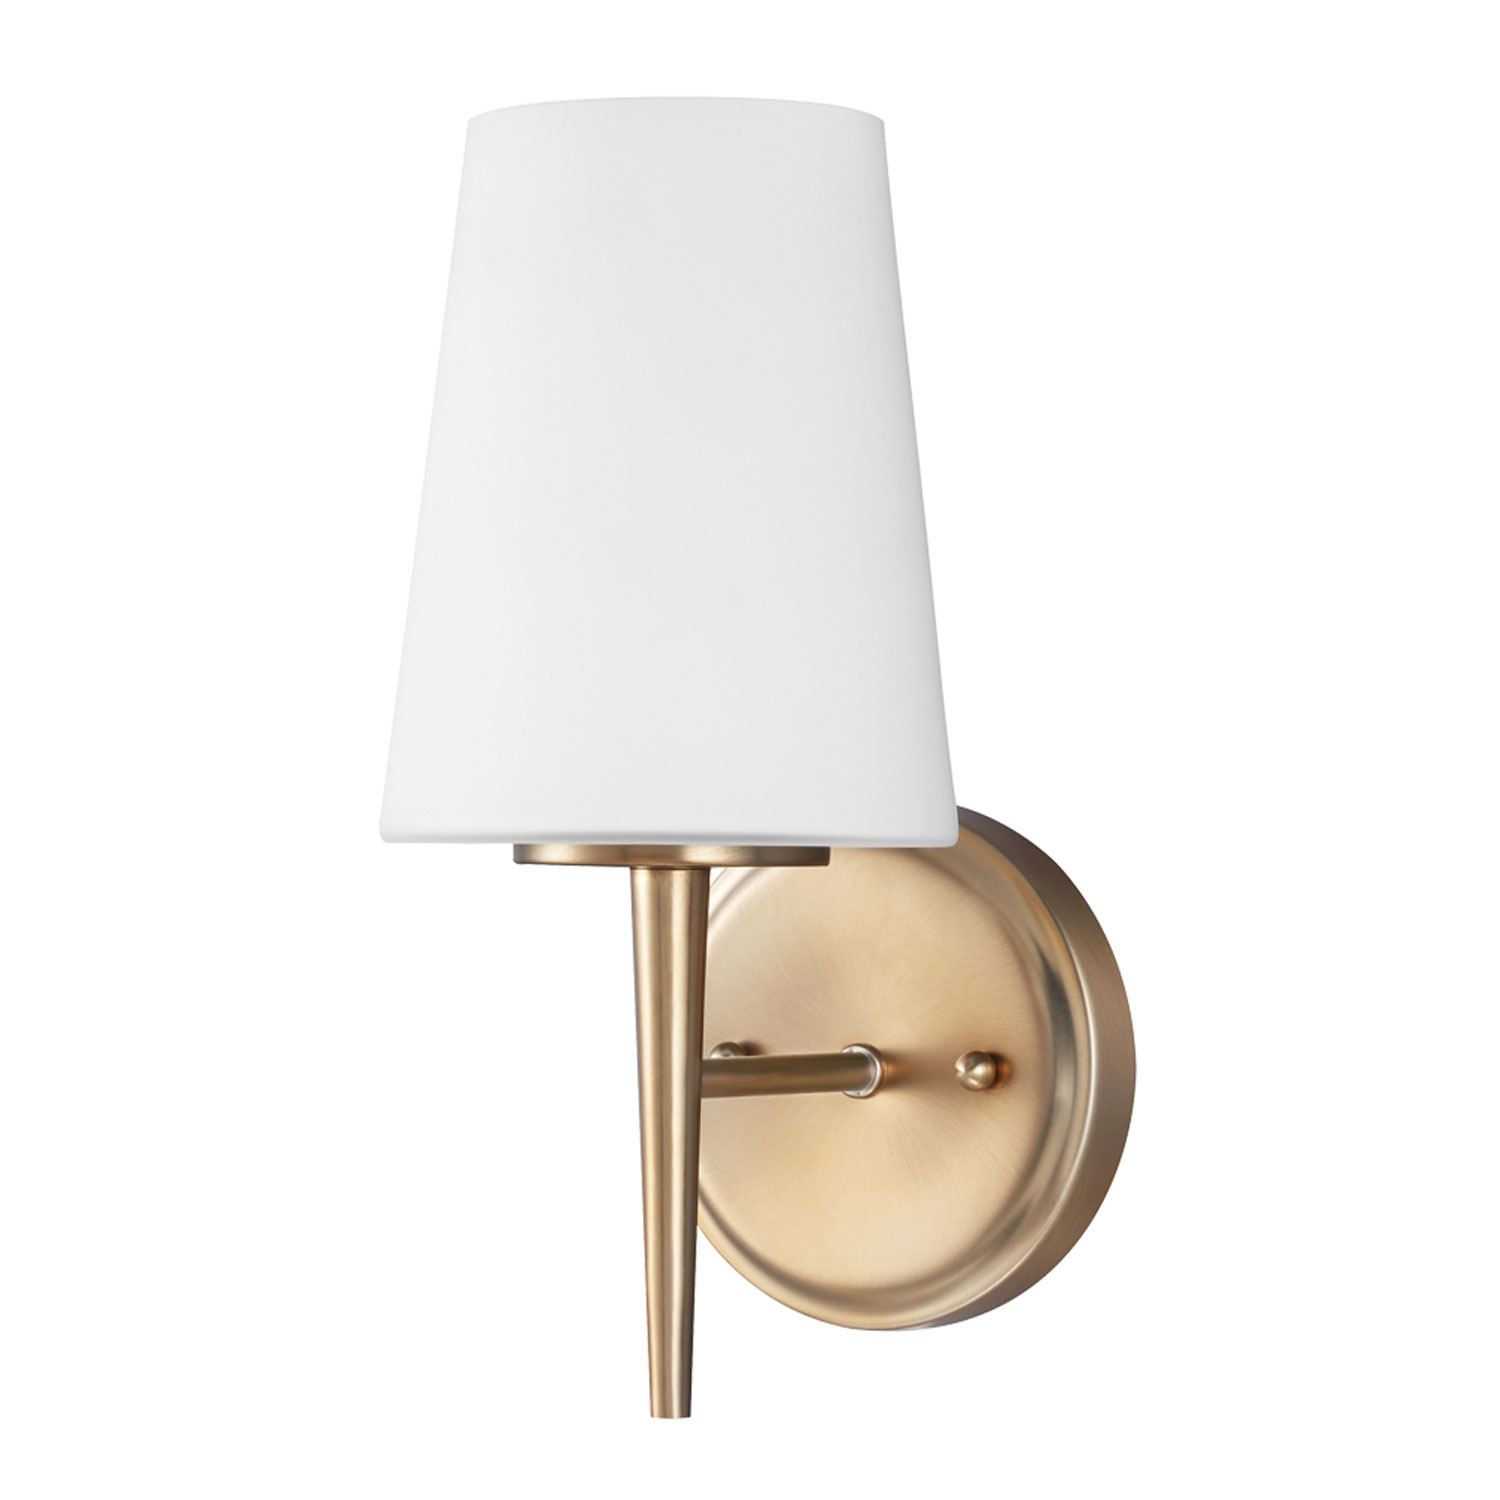 Alluring Bathroom Wall Sconce Of Hover To Zoom